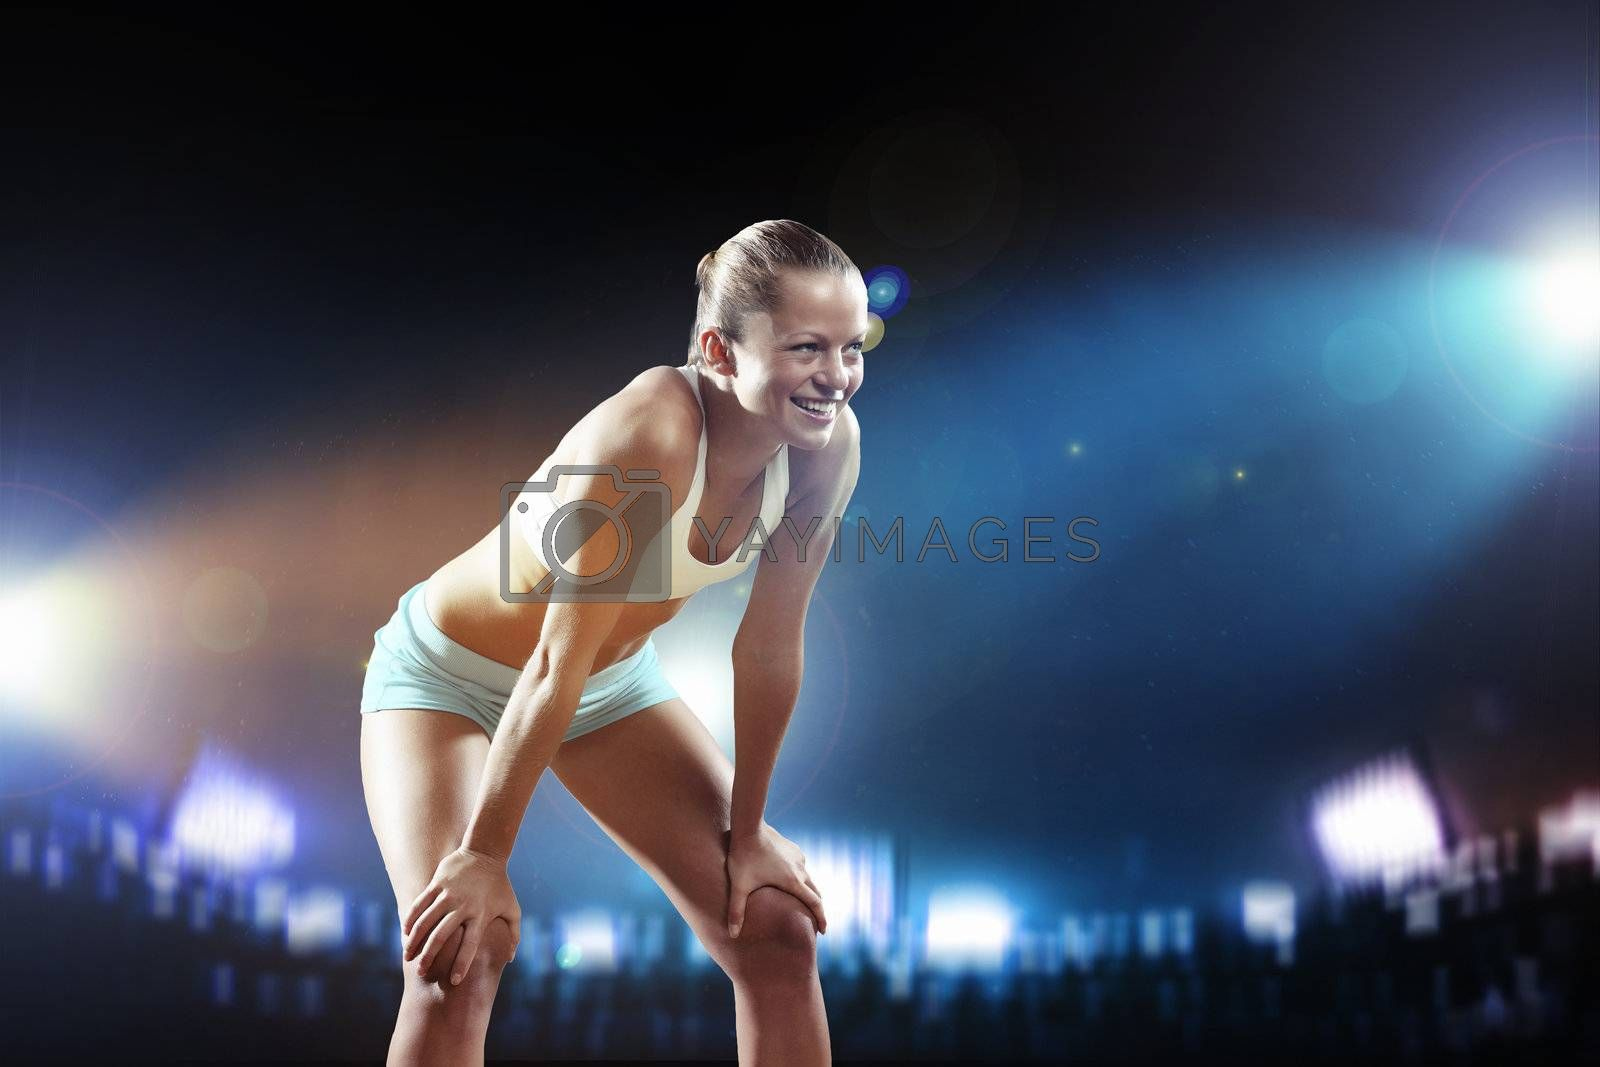 Fitness woman standing against stadium lights background